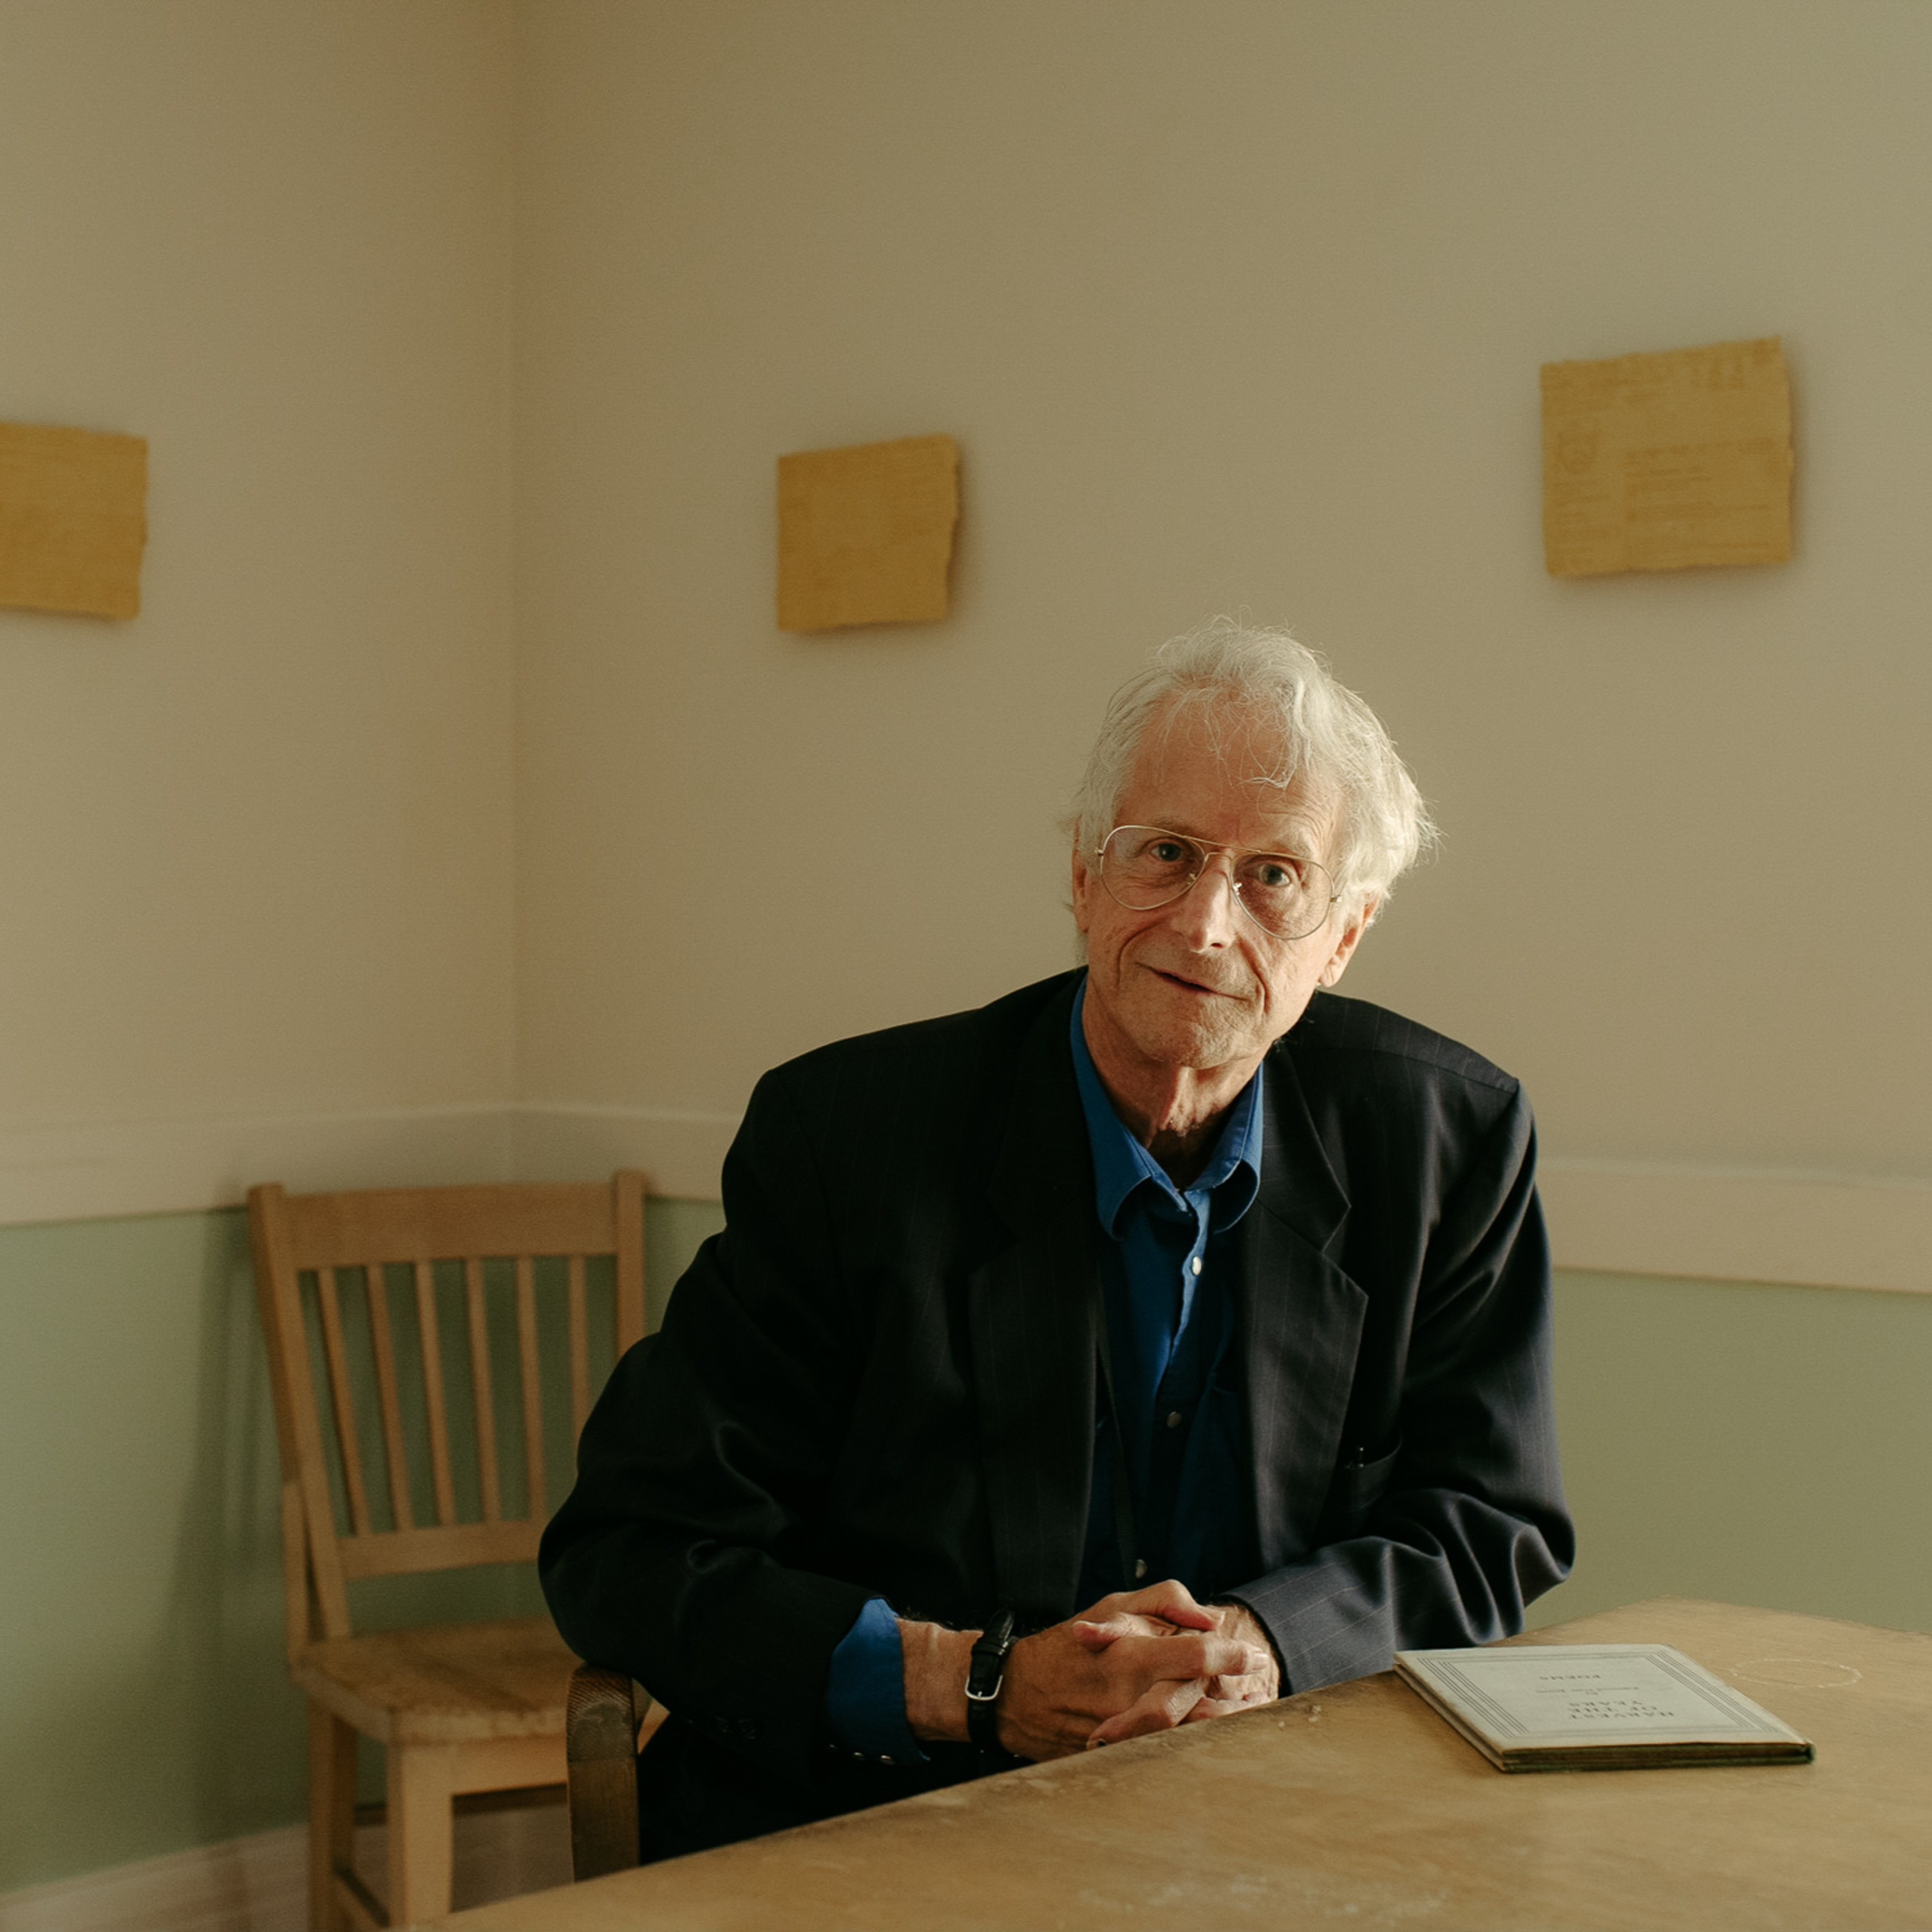 Interview with Ted Nelson